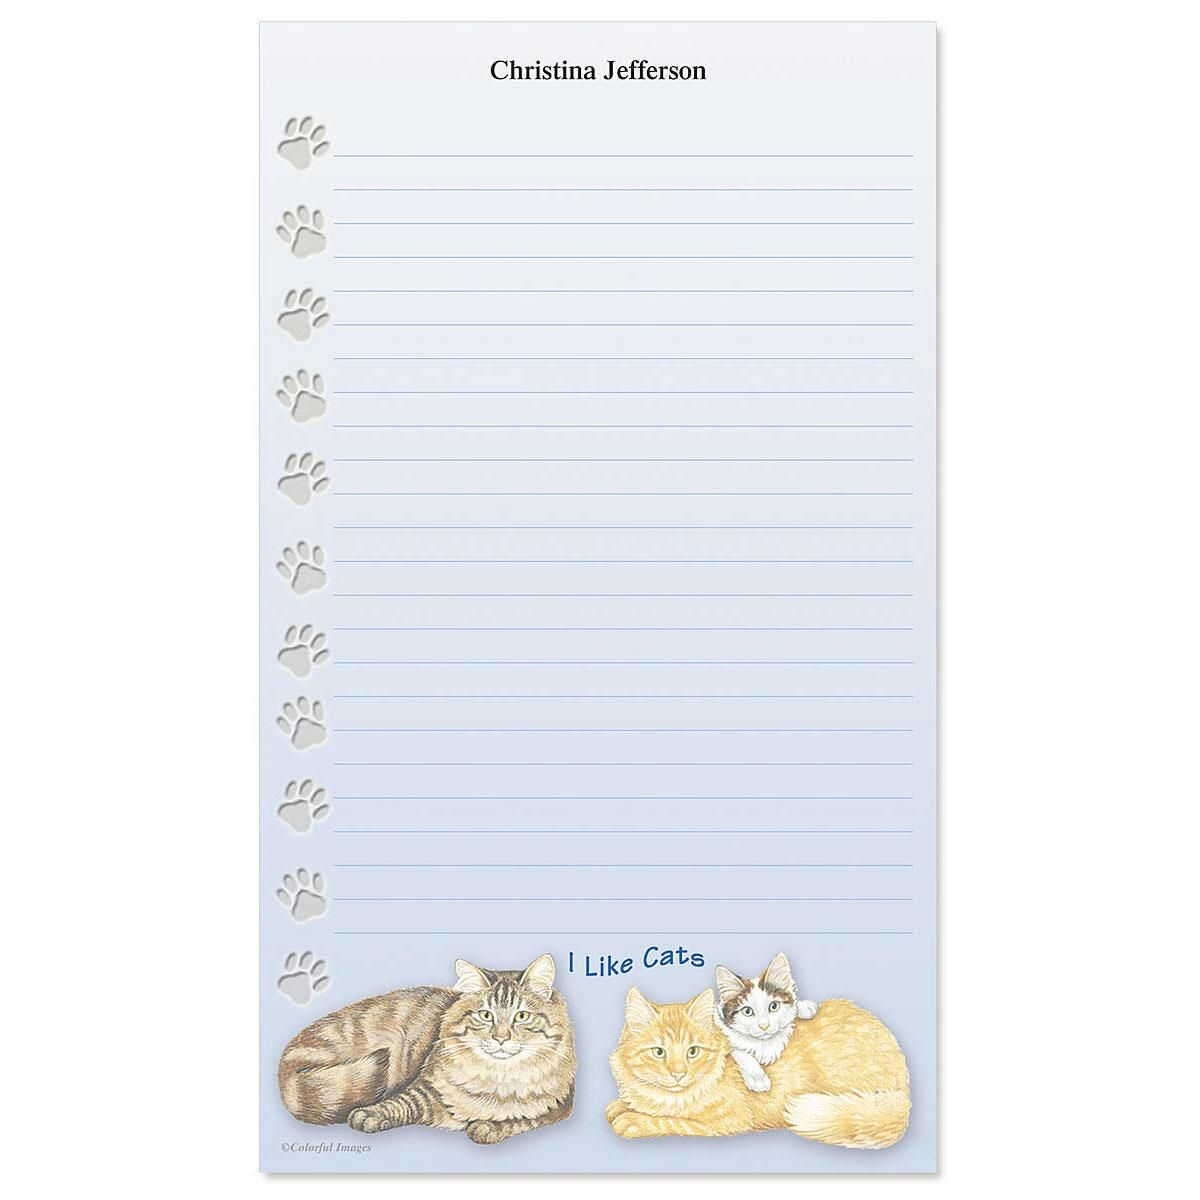 I Like Cats Custom Memo Pads